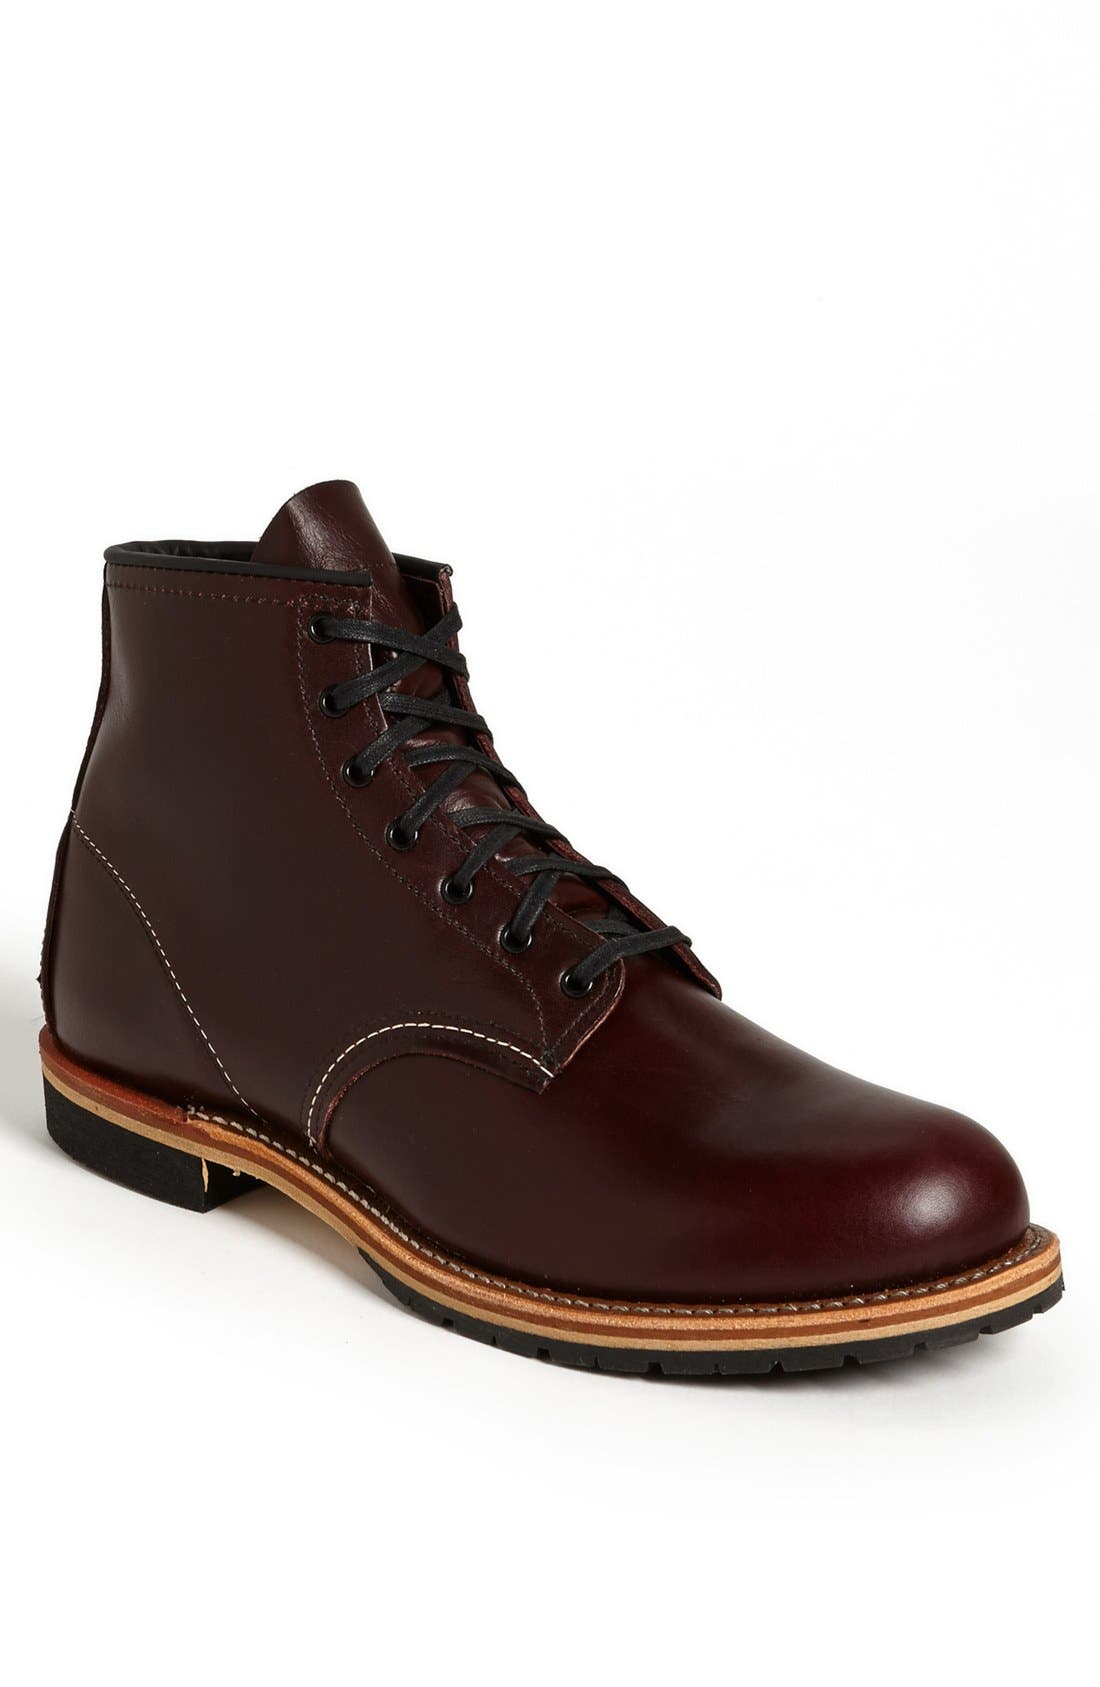 'Beckman' Boot,                         Main,                         color, 002